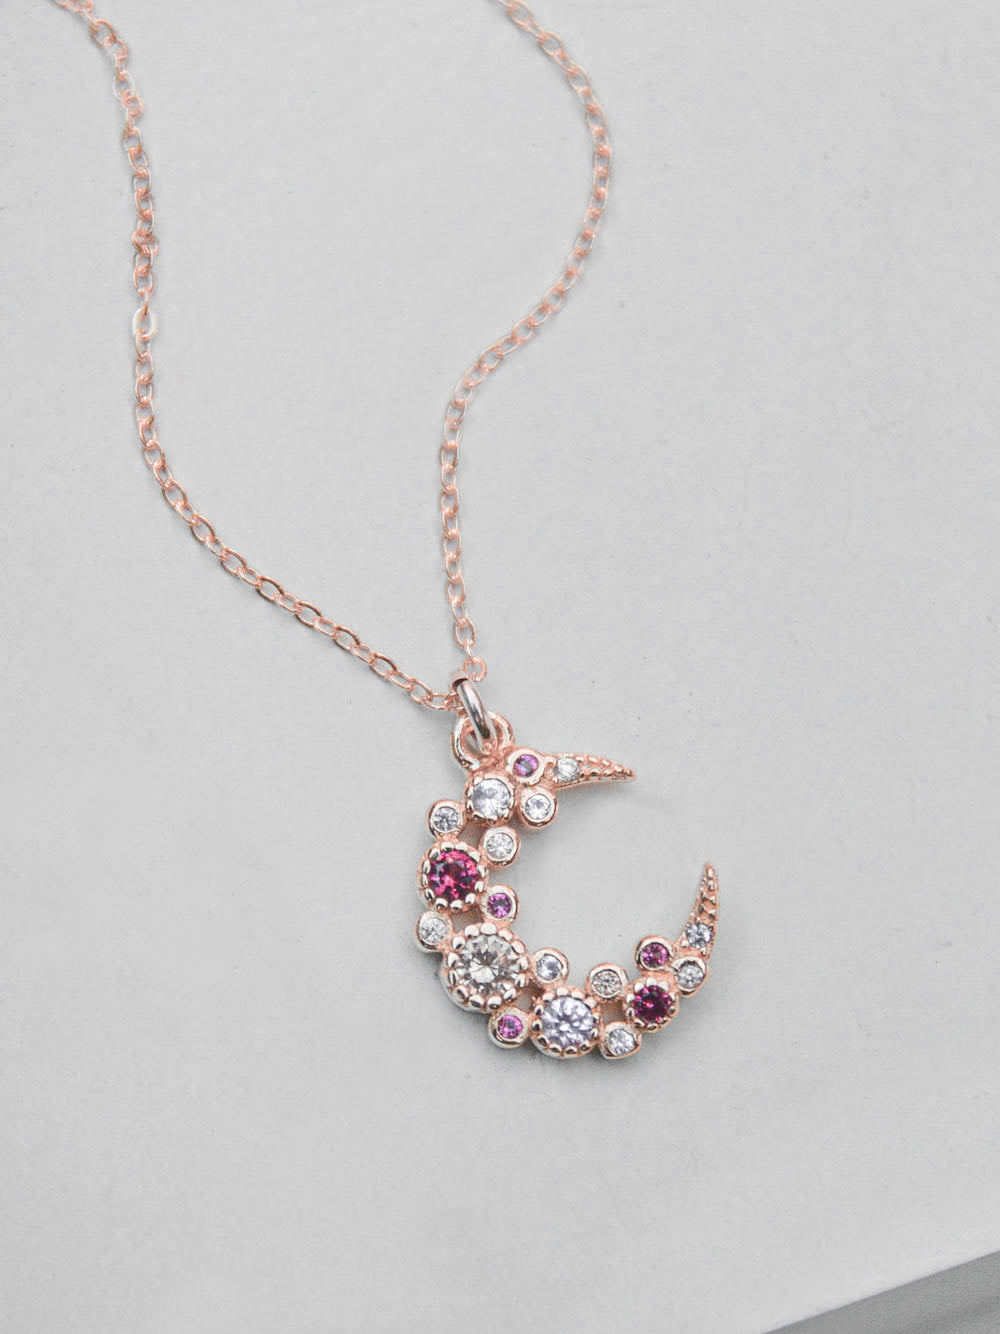 Pink Cluster Moon CZ Charm Rose Gold Necklace  by The Faint Hearted Jewelry